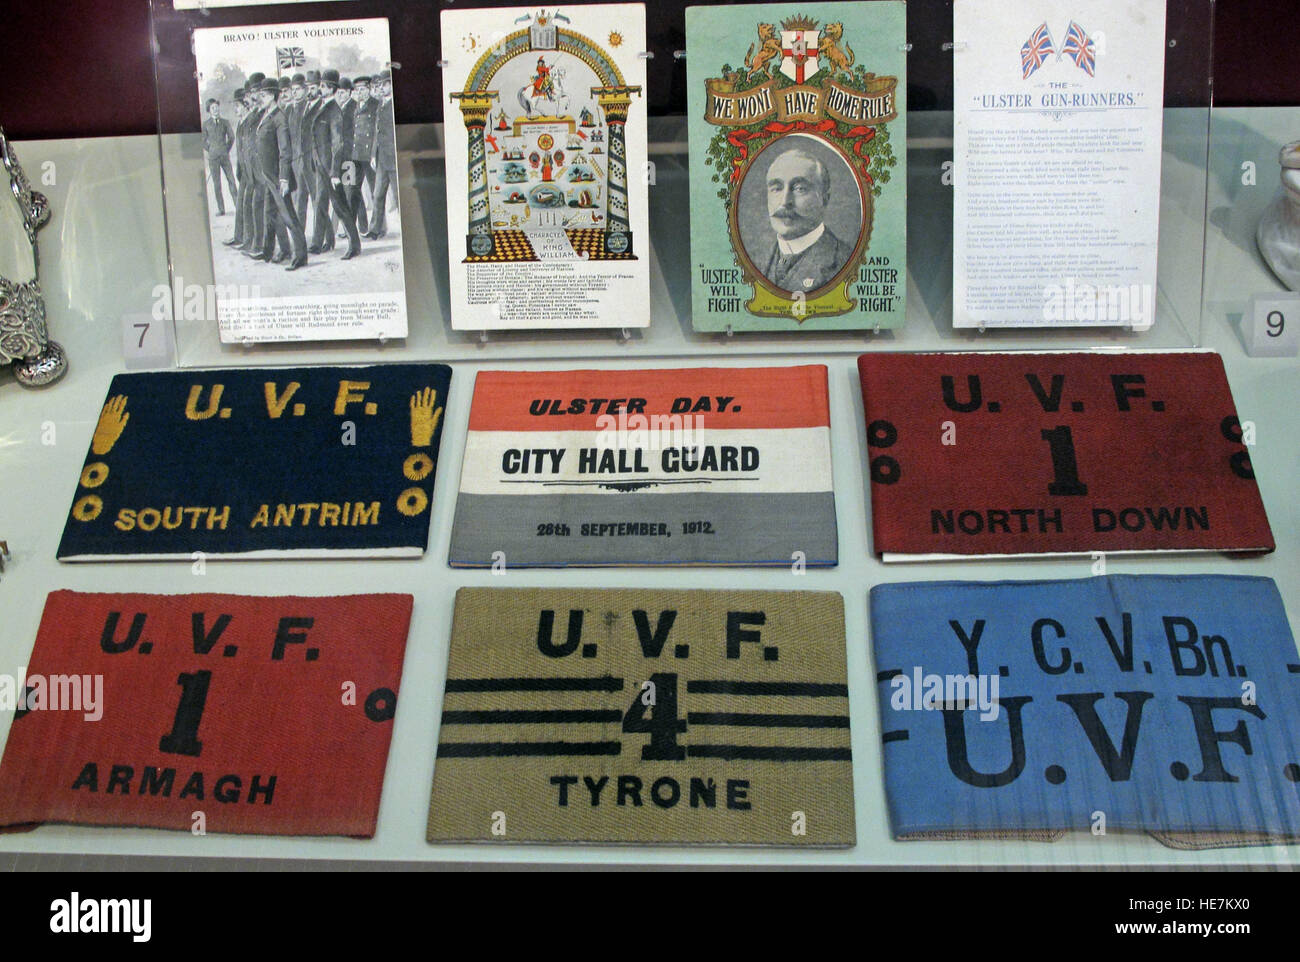 Ulster Day - 28th Sep 1912 - City Hall Guard - Home Rule Crisis UVF armbands Stock Photo